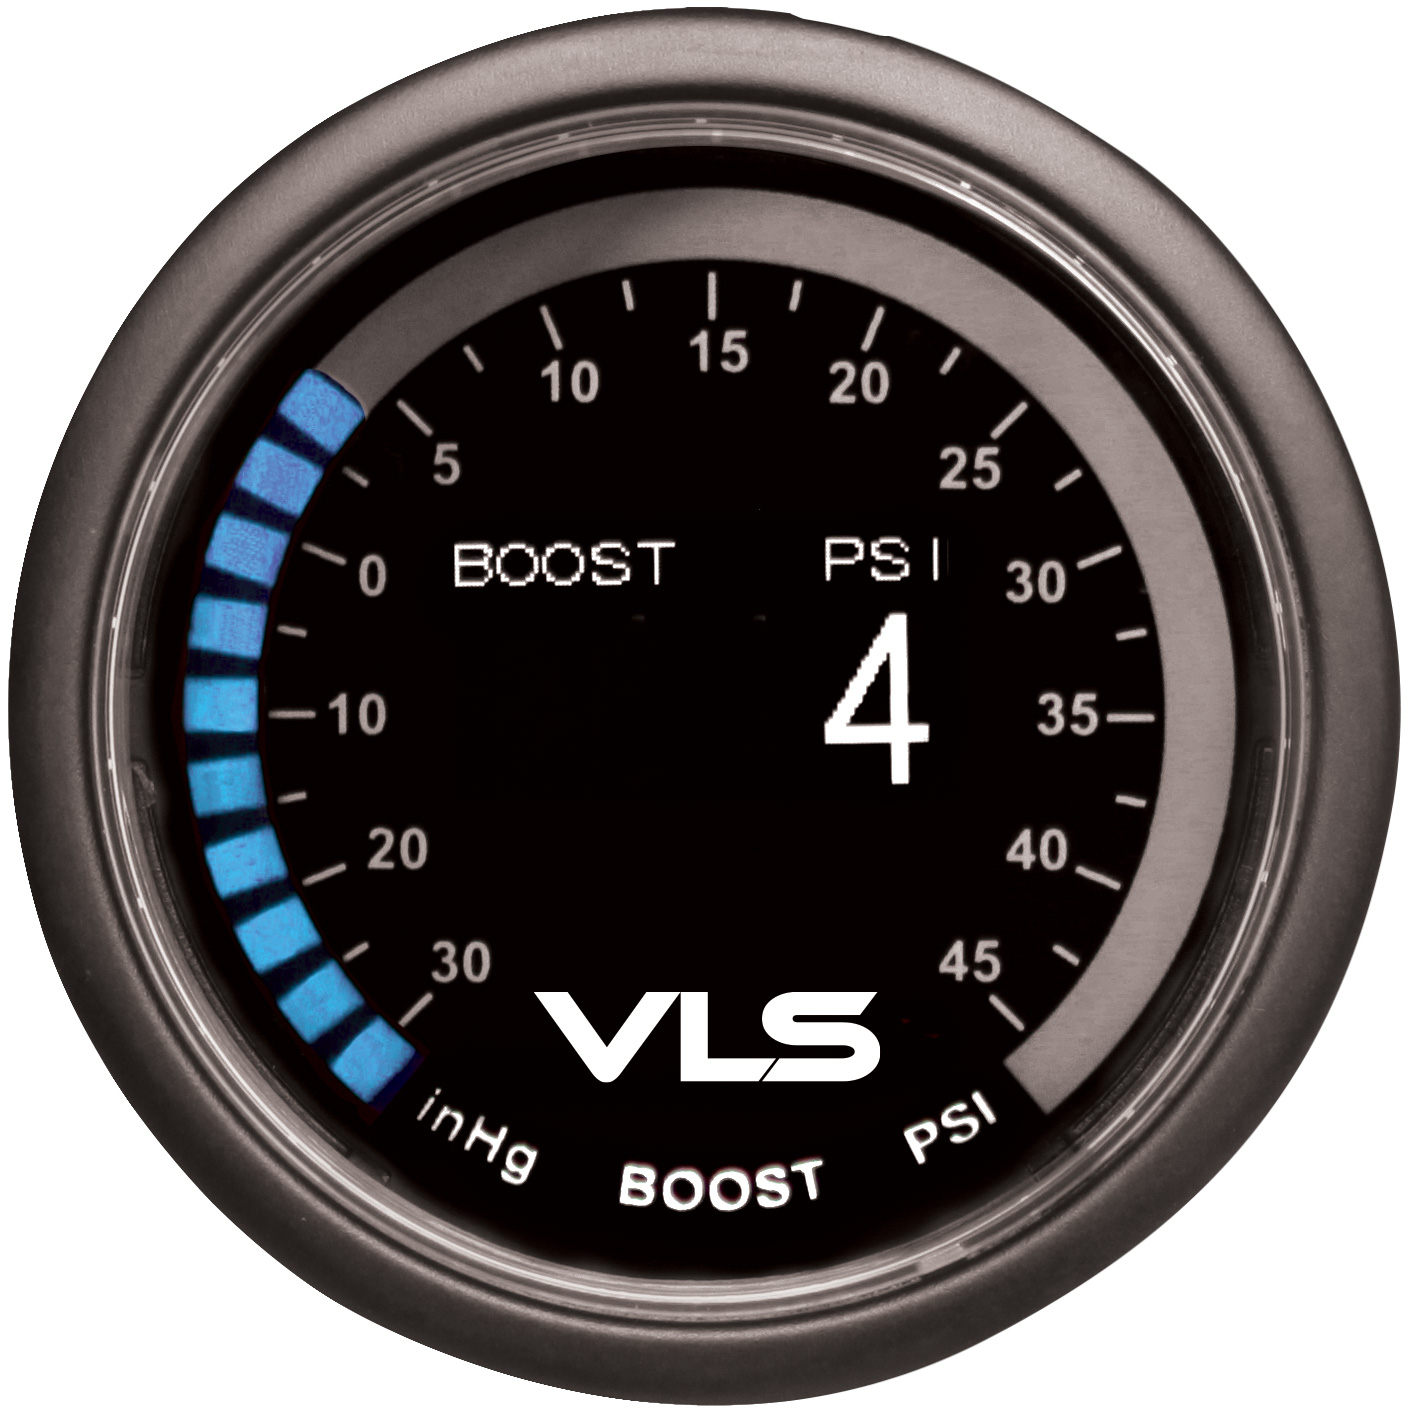 Revel VLS Boost Gauge